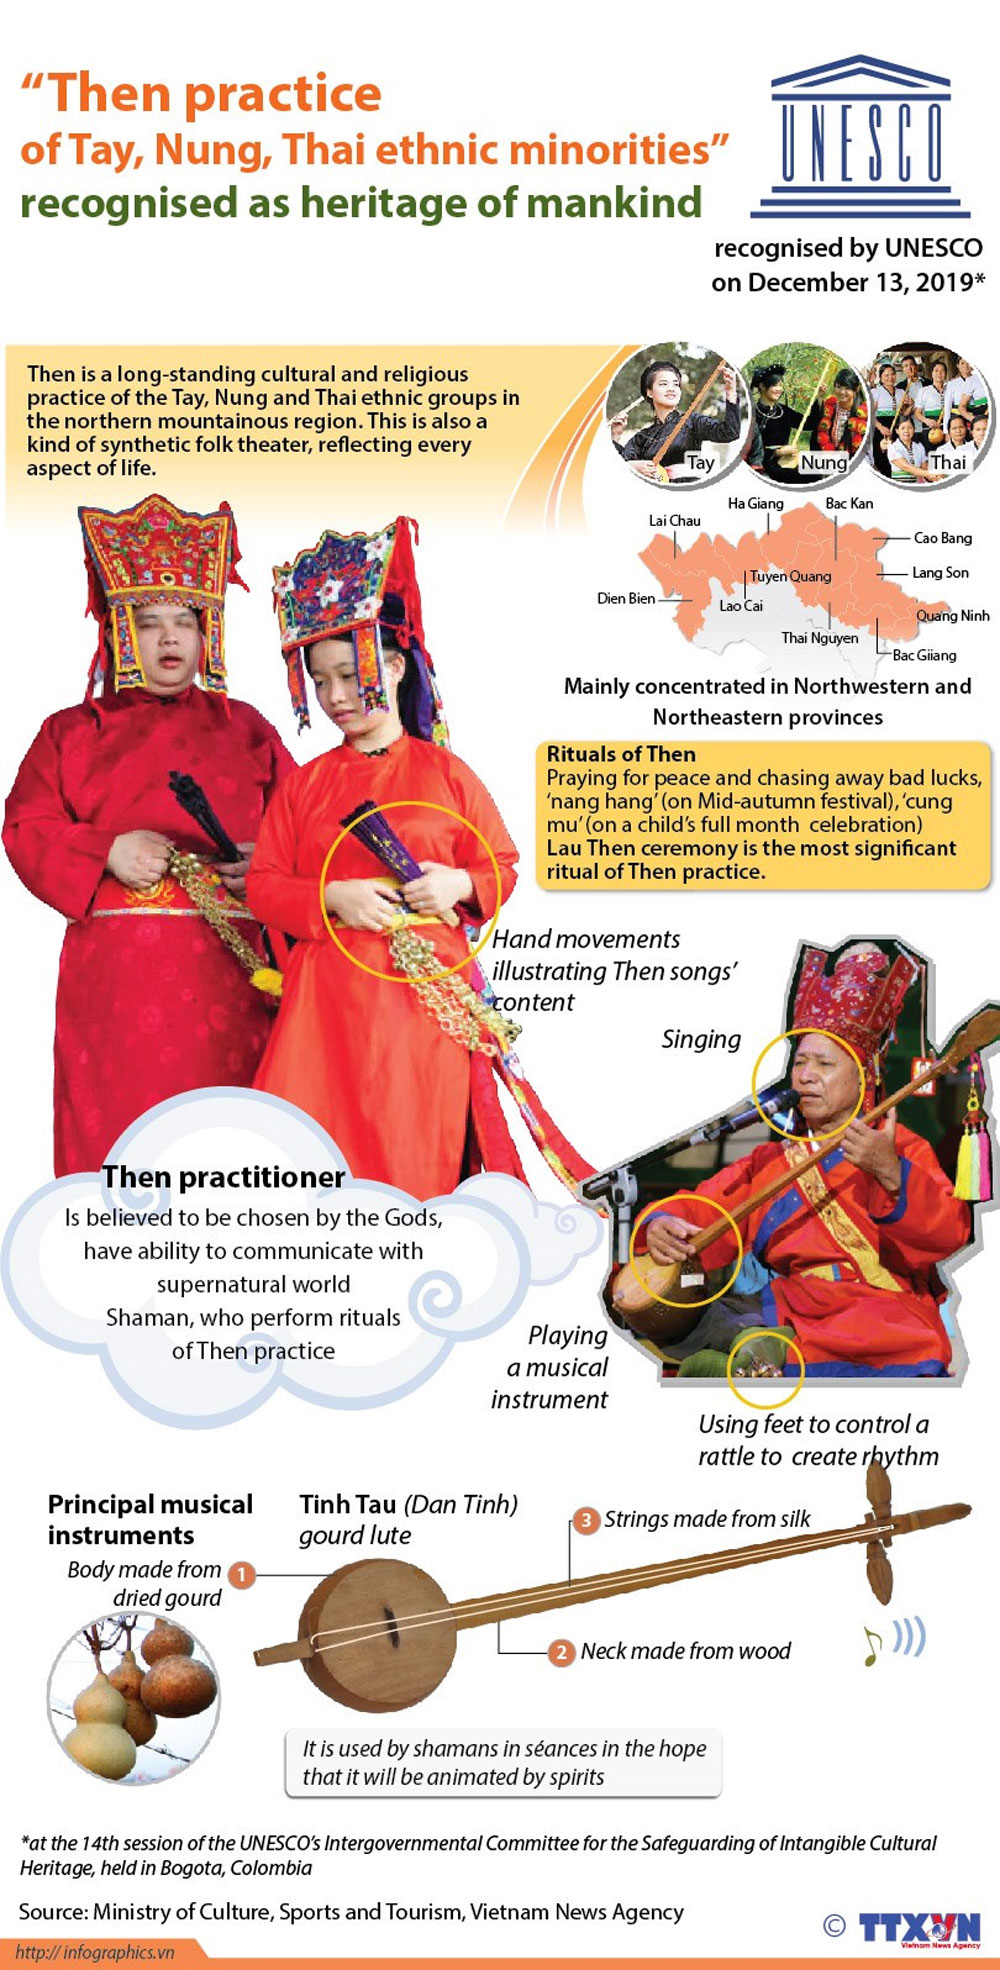 Then practice, heritage of mankind, long-standing, cultural and religious practice, ethnic people